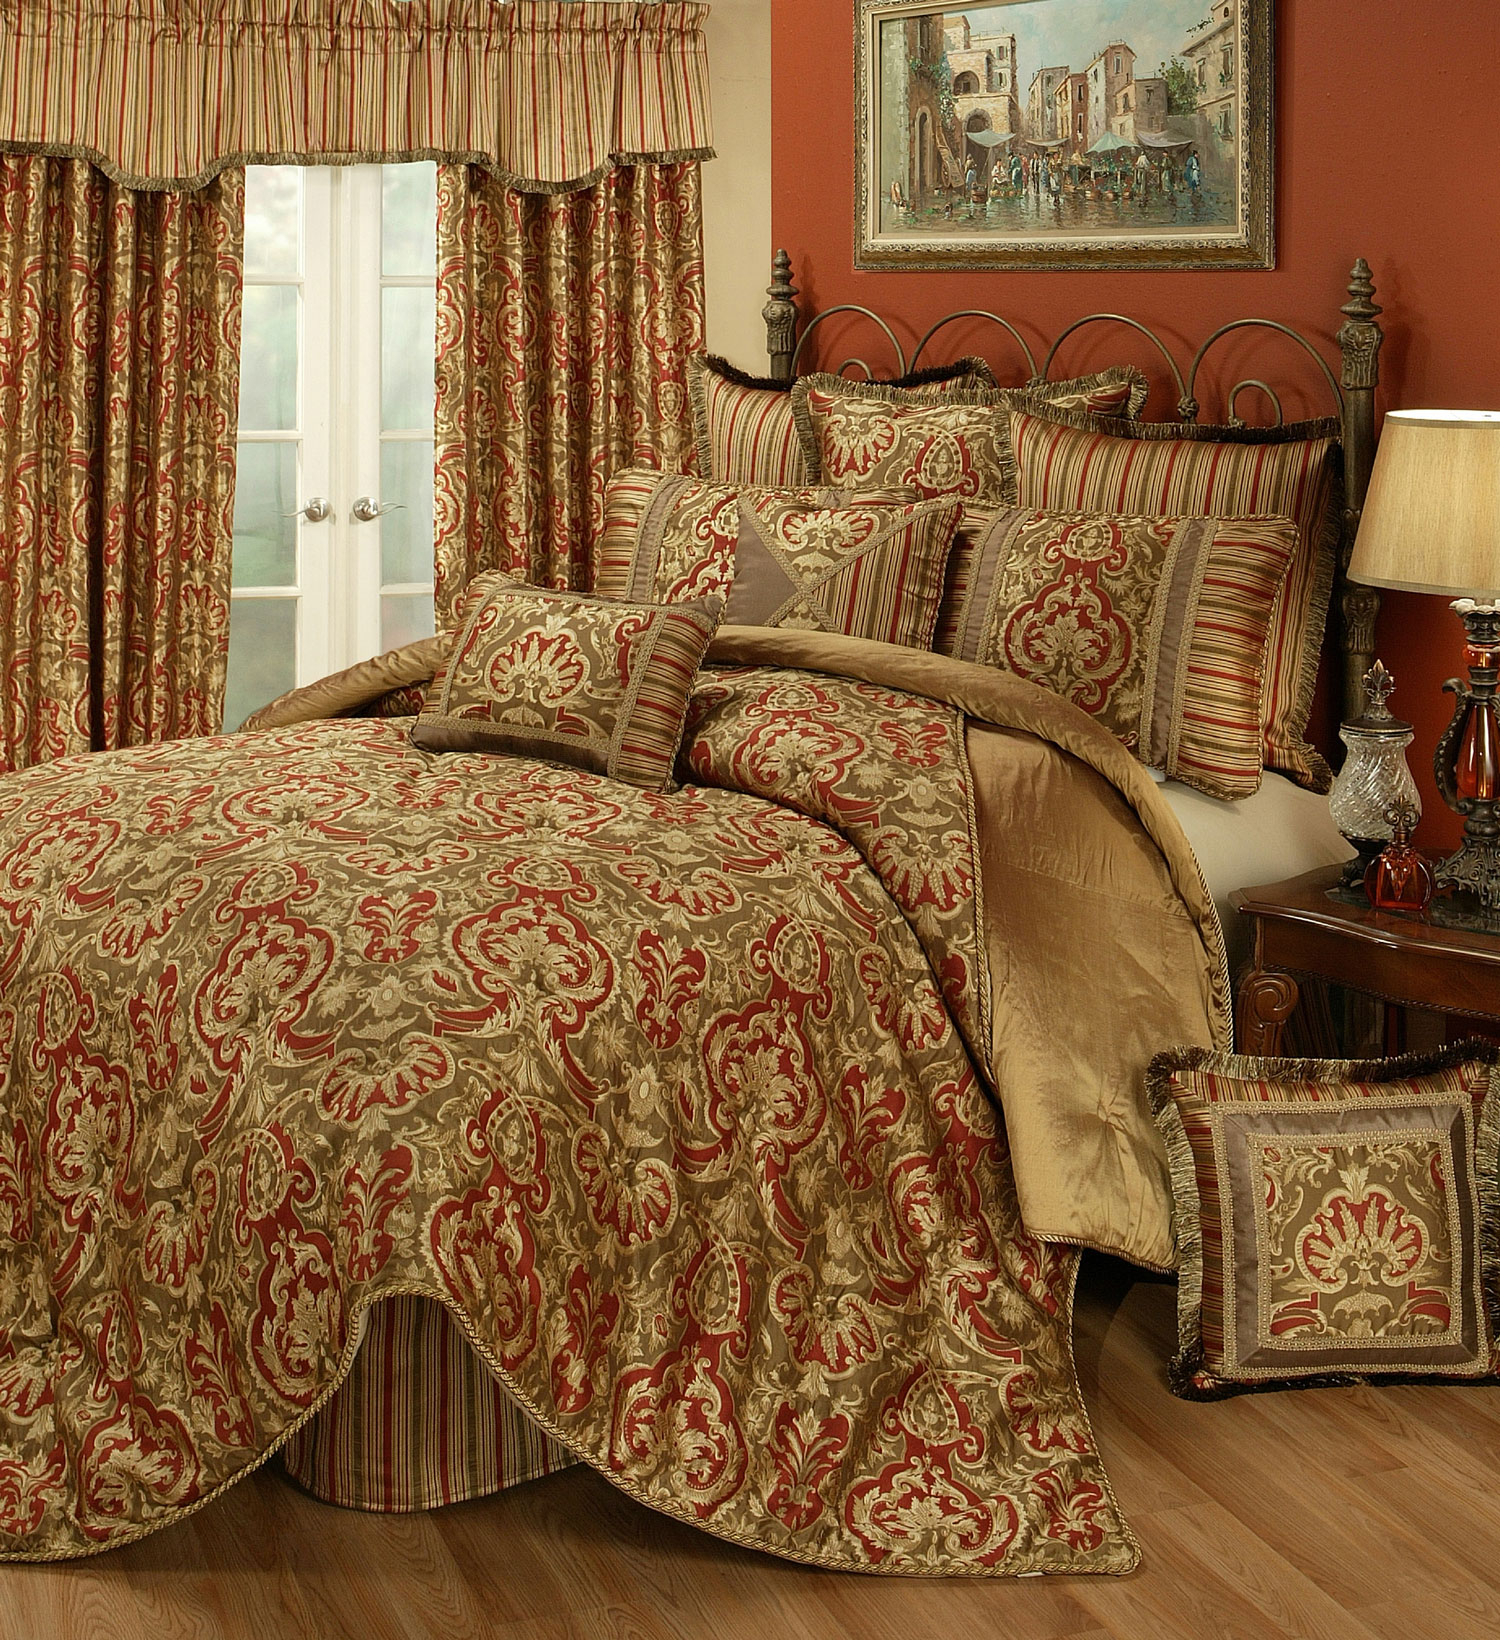 Botticelli by Austin Horn Luxury Bedding  BeddingSuperStorecom